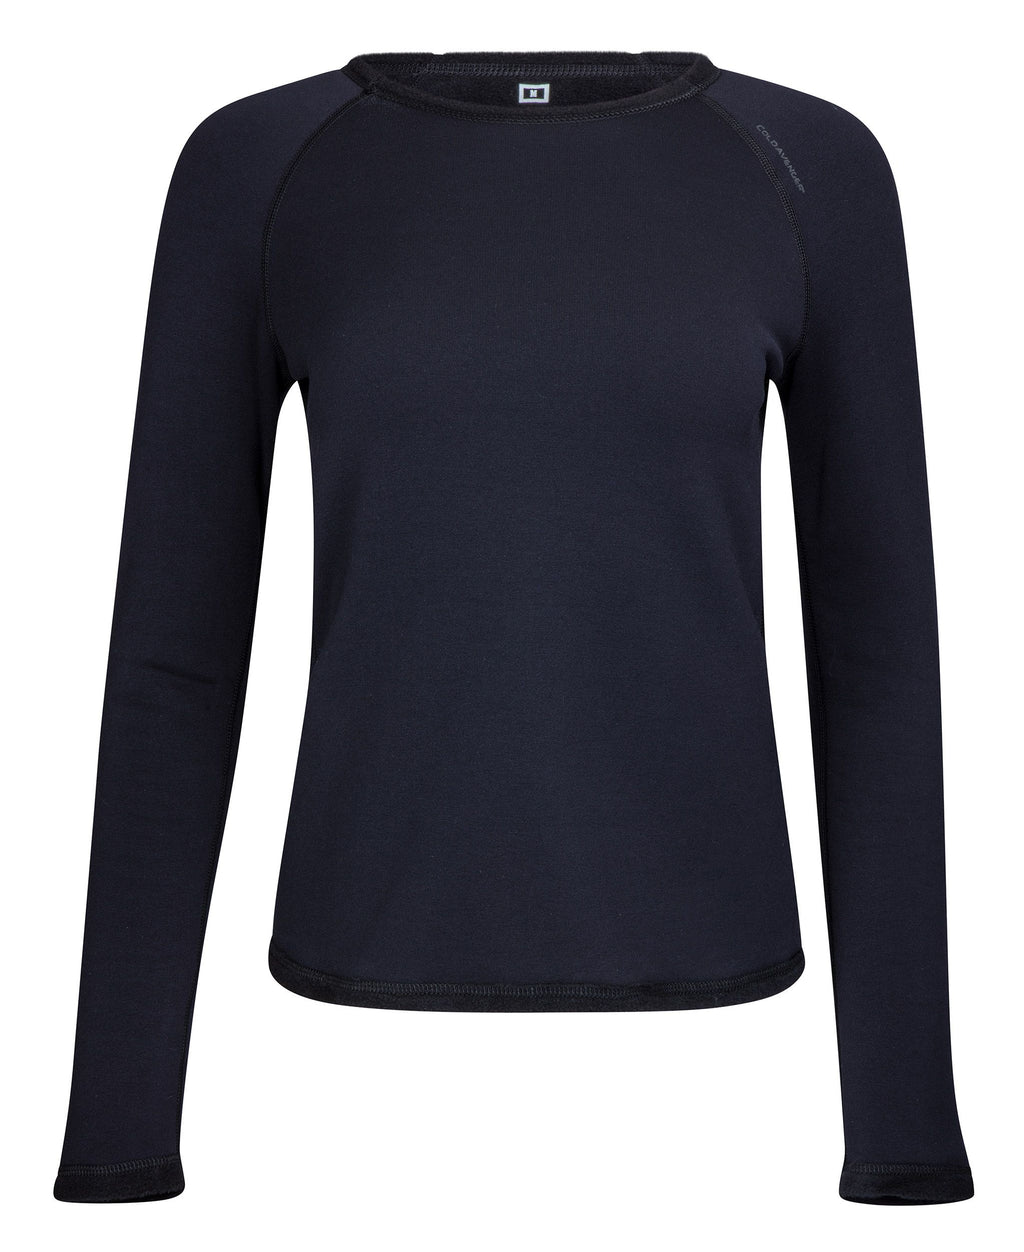 FR XCW Woman's Top